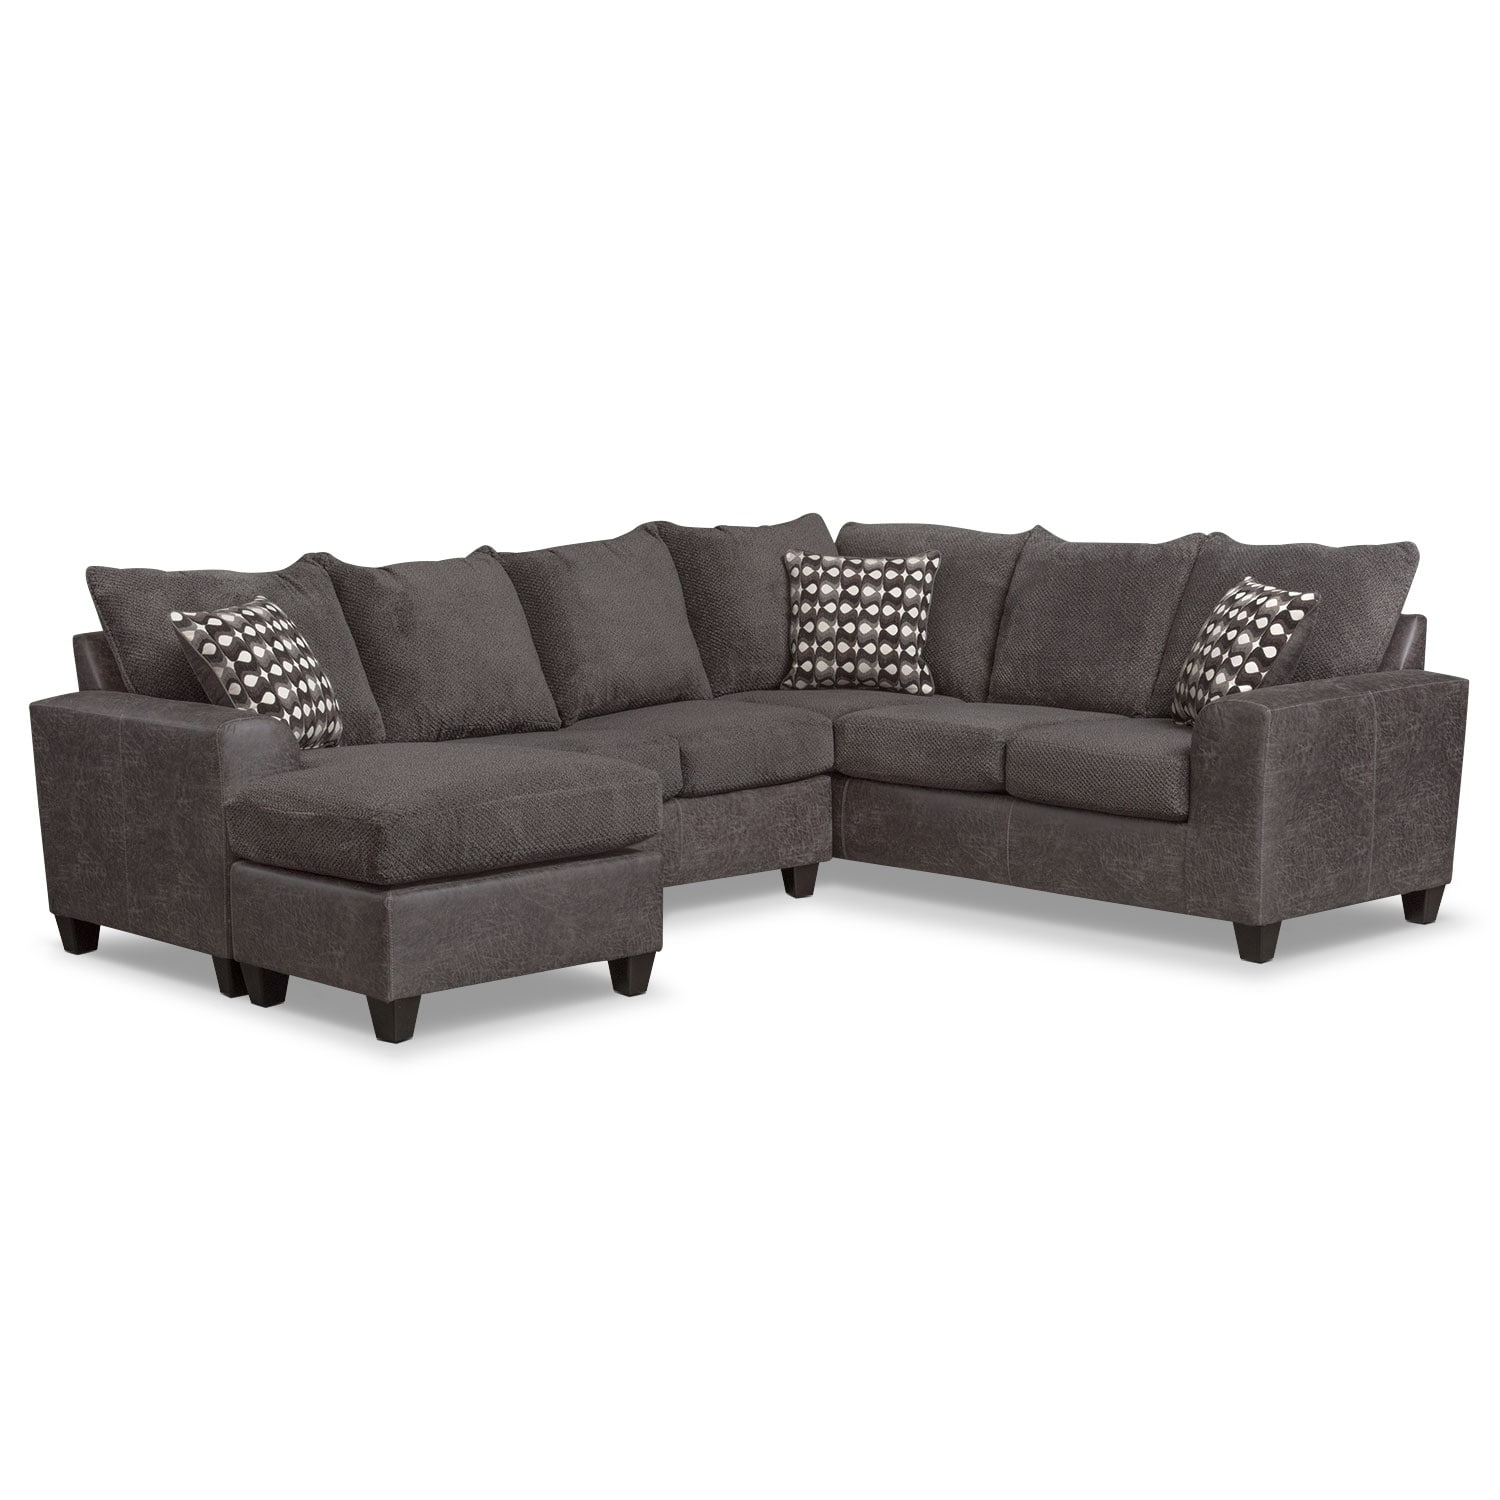 Sectional Corner Couch Brando 3 Piece Sectional With Modular Chaise